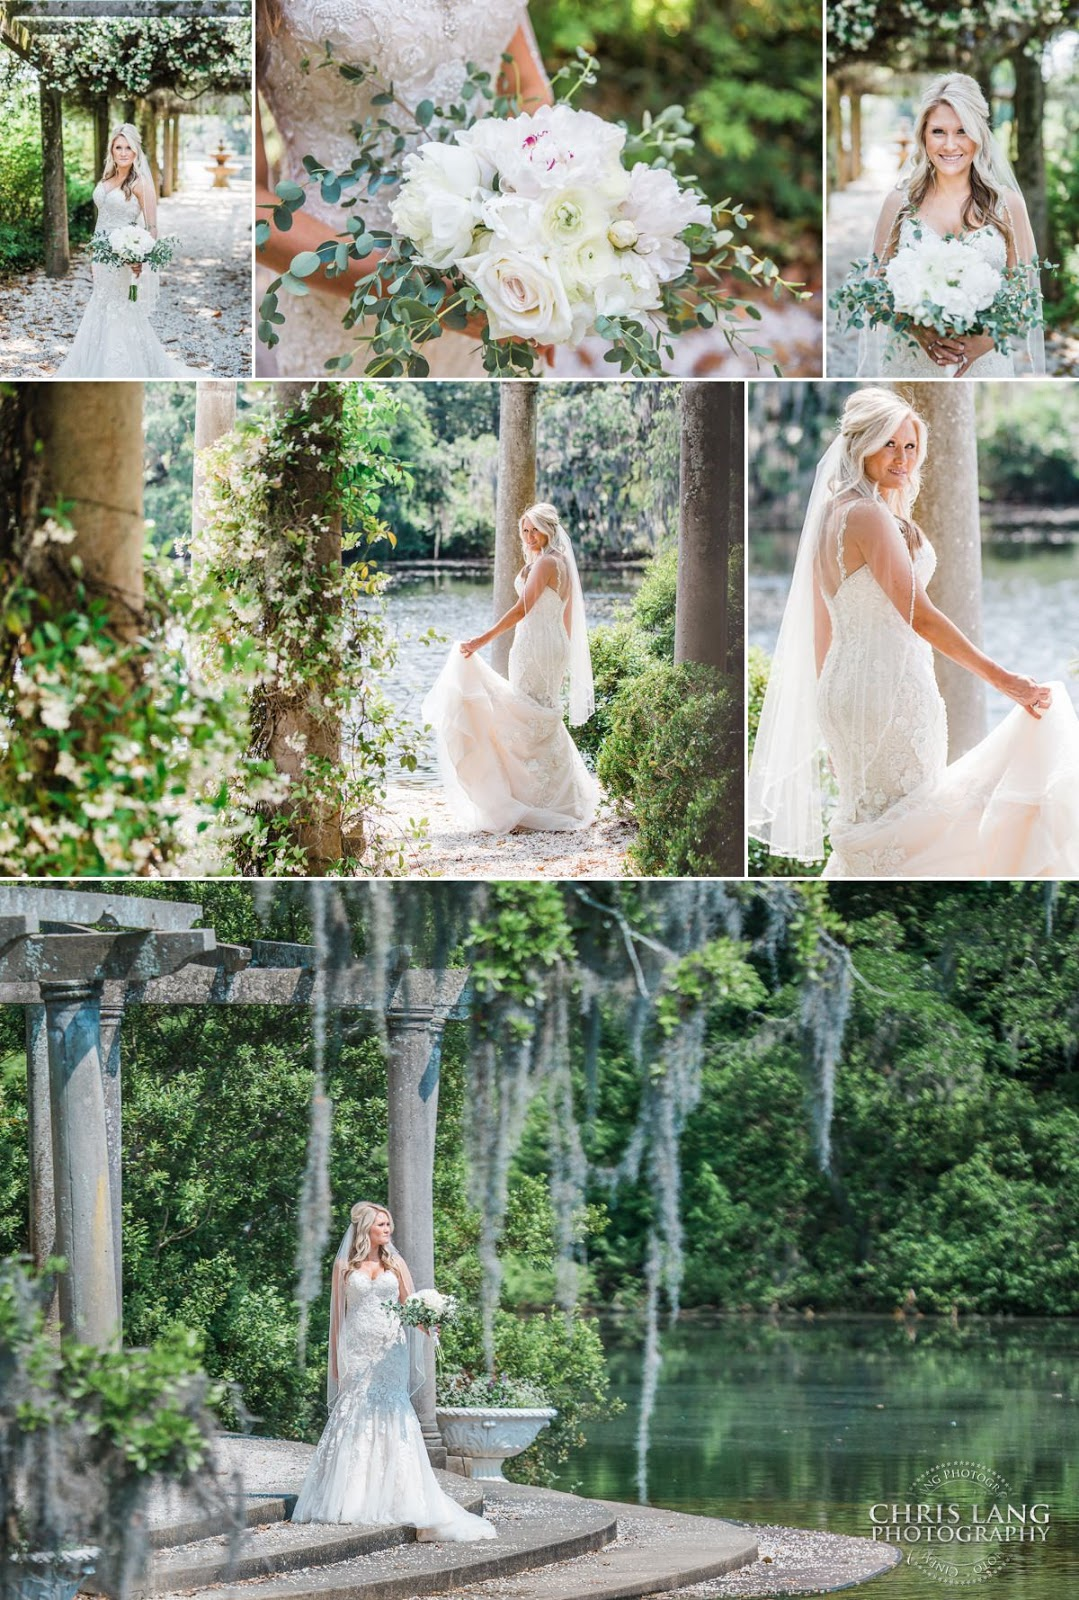 Image of bride in her wedding dress at Airlie Gardens in Wilmington NC - Airlie Gardens Weddings -  Wilmington NC Wedding Photography